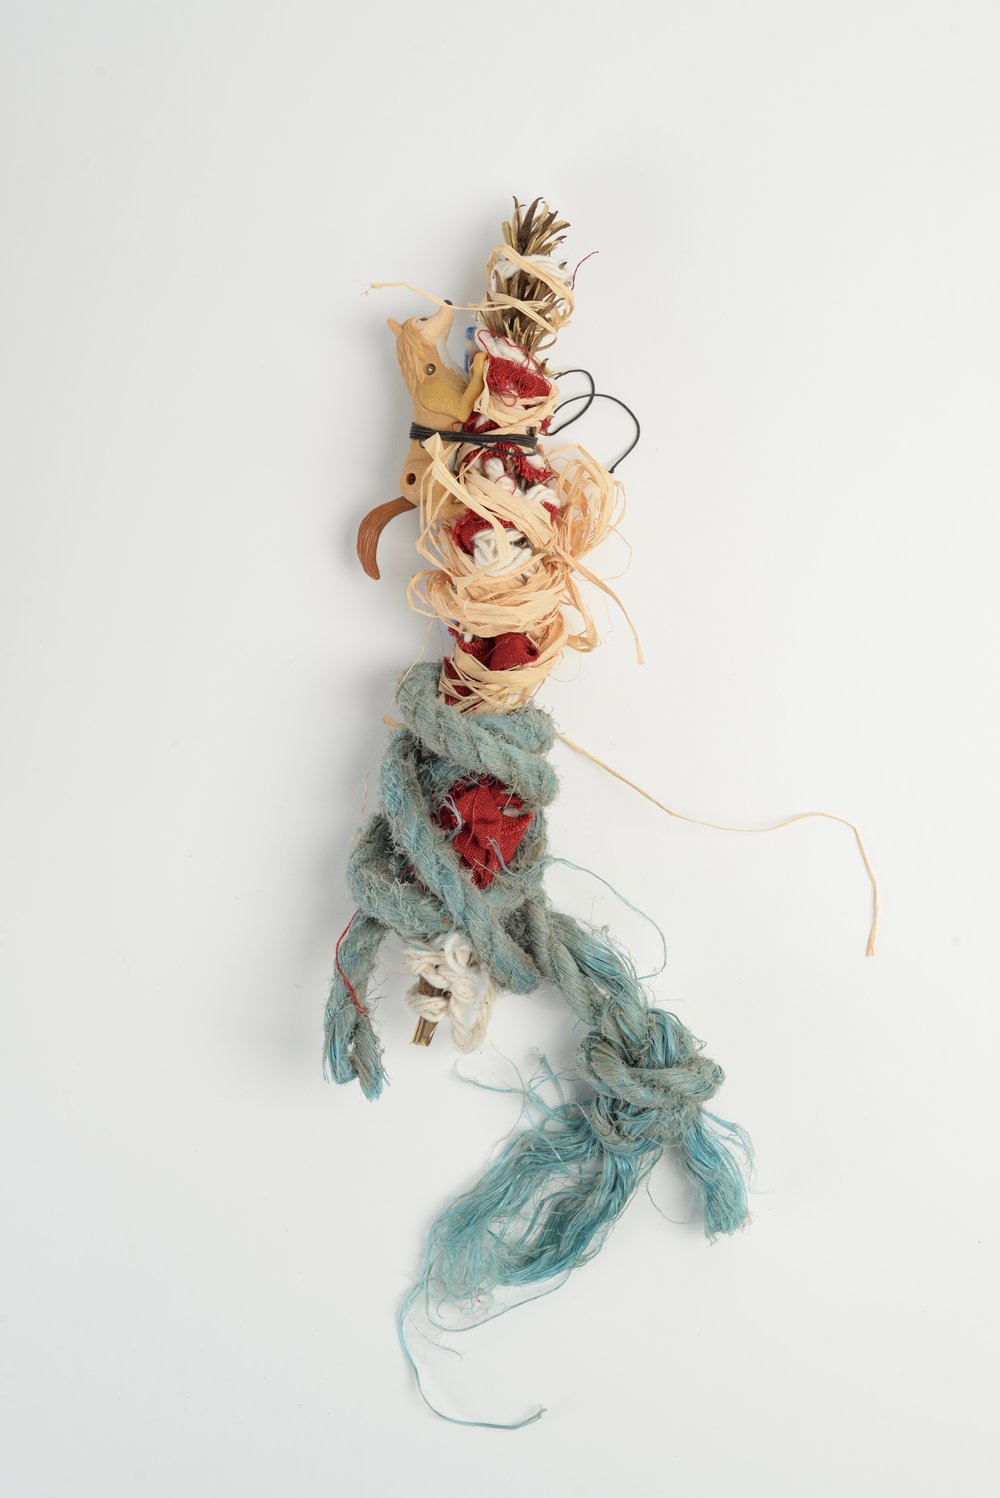 McDonalds,   2018  cloth, rope, string, clay, plastic toy, raffia, thread, dried flower stalk h35cm